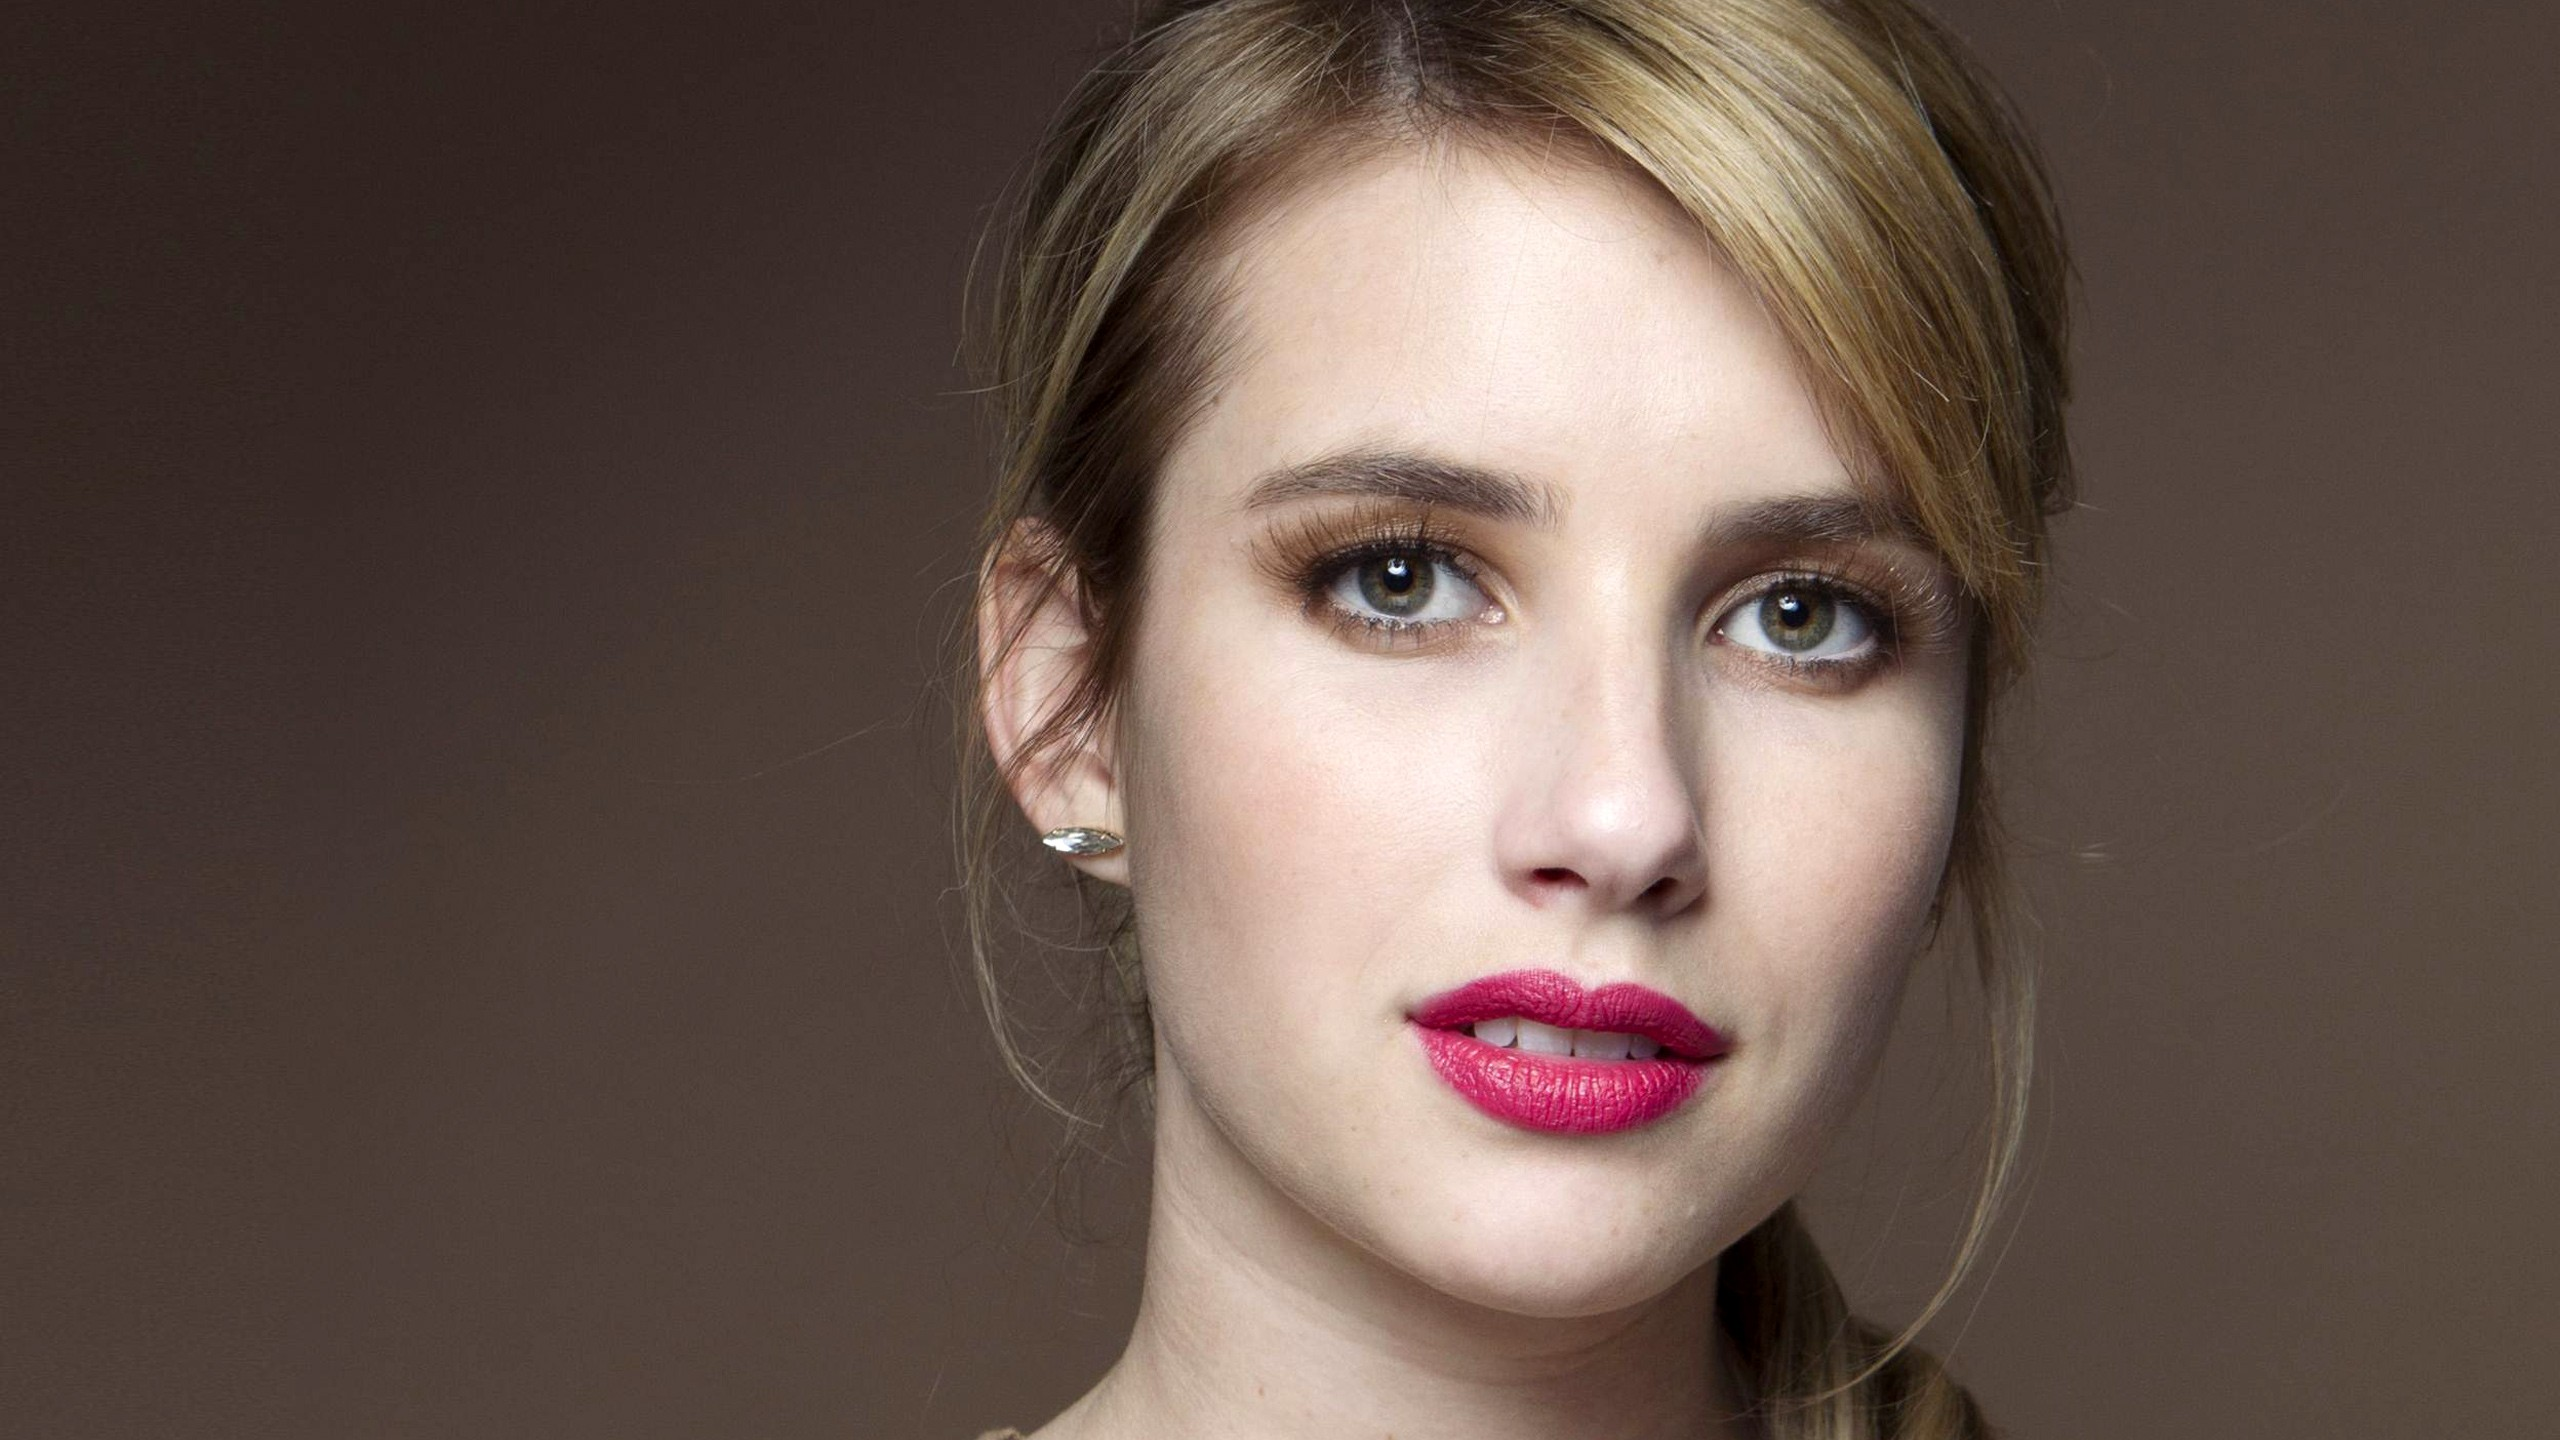 American Horror Story Wallpaper Iphone Emma Roberts Beautiful Wallpapers Hd Wallpapers Id 19704